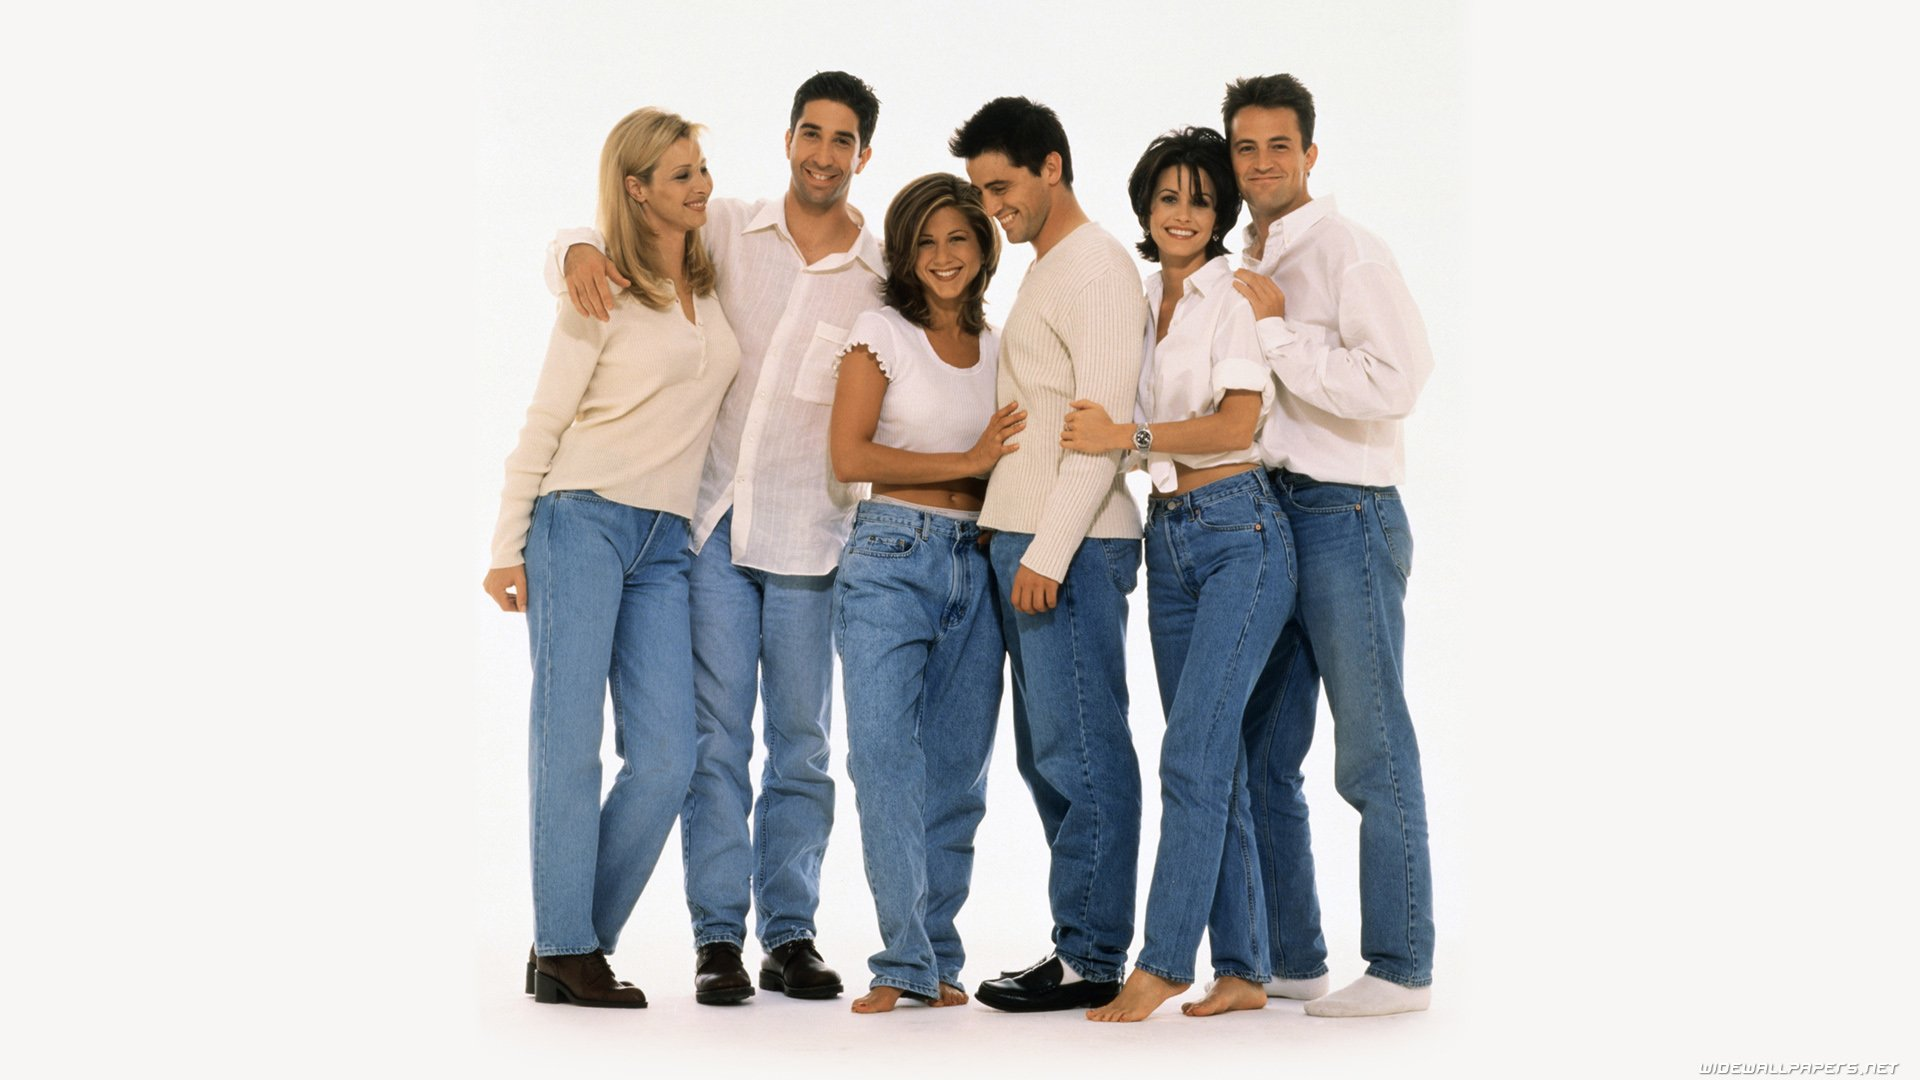 Friends images Matching Outfits! HD wallpaper and background photos